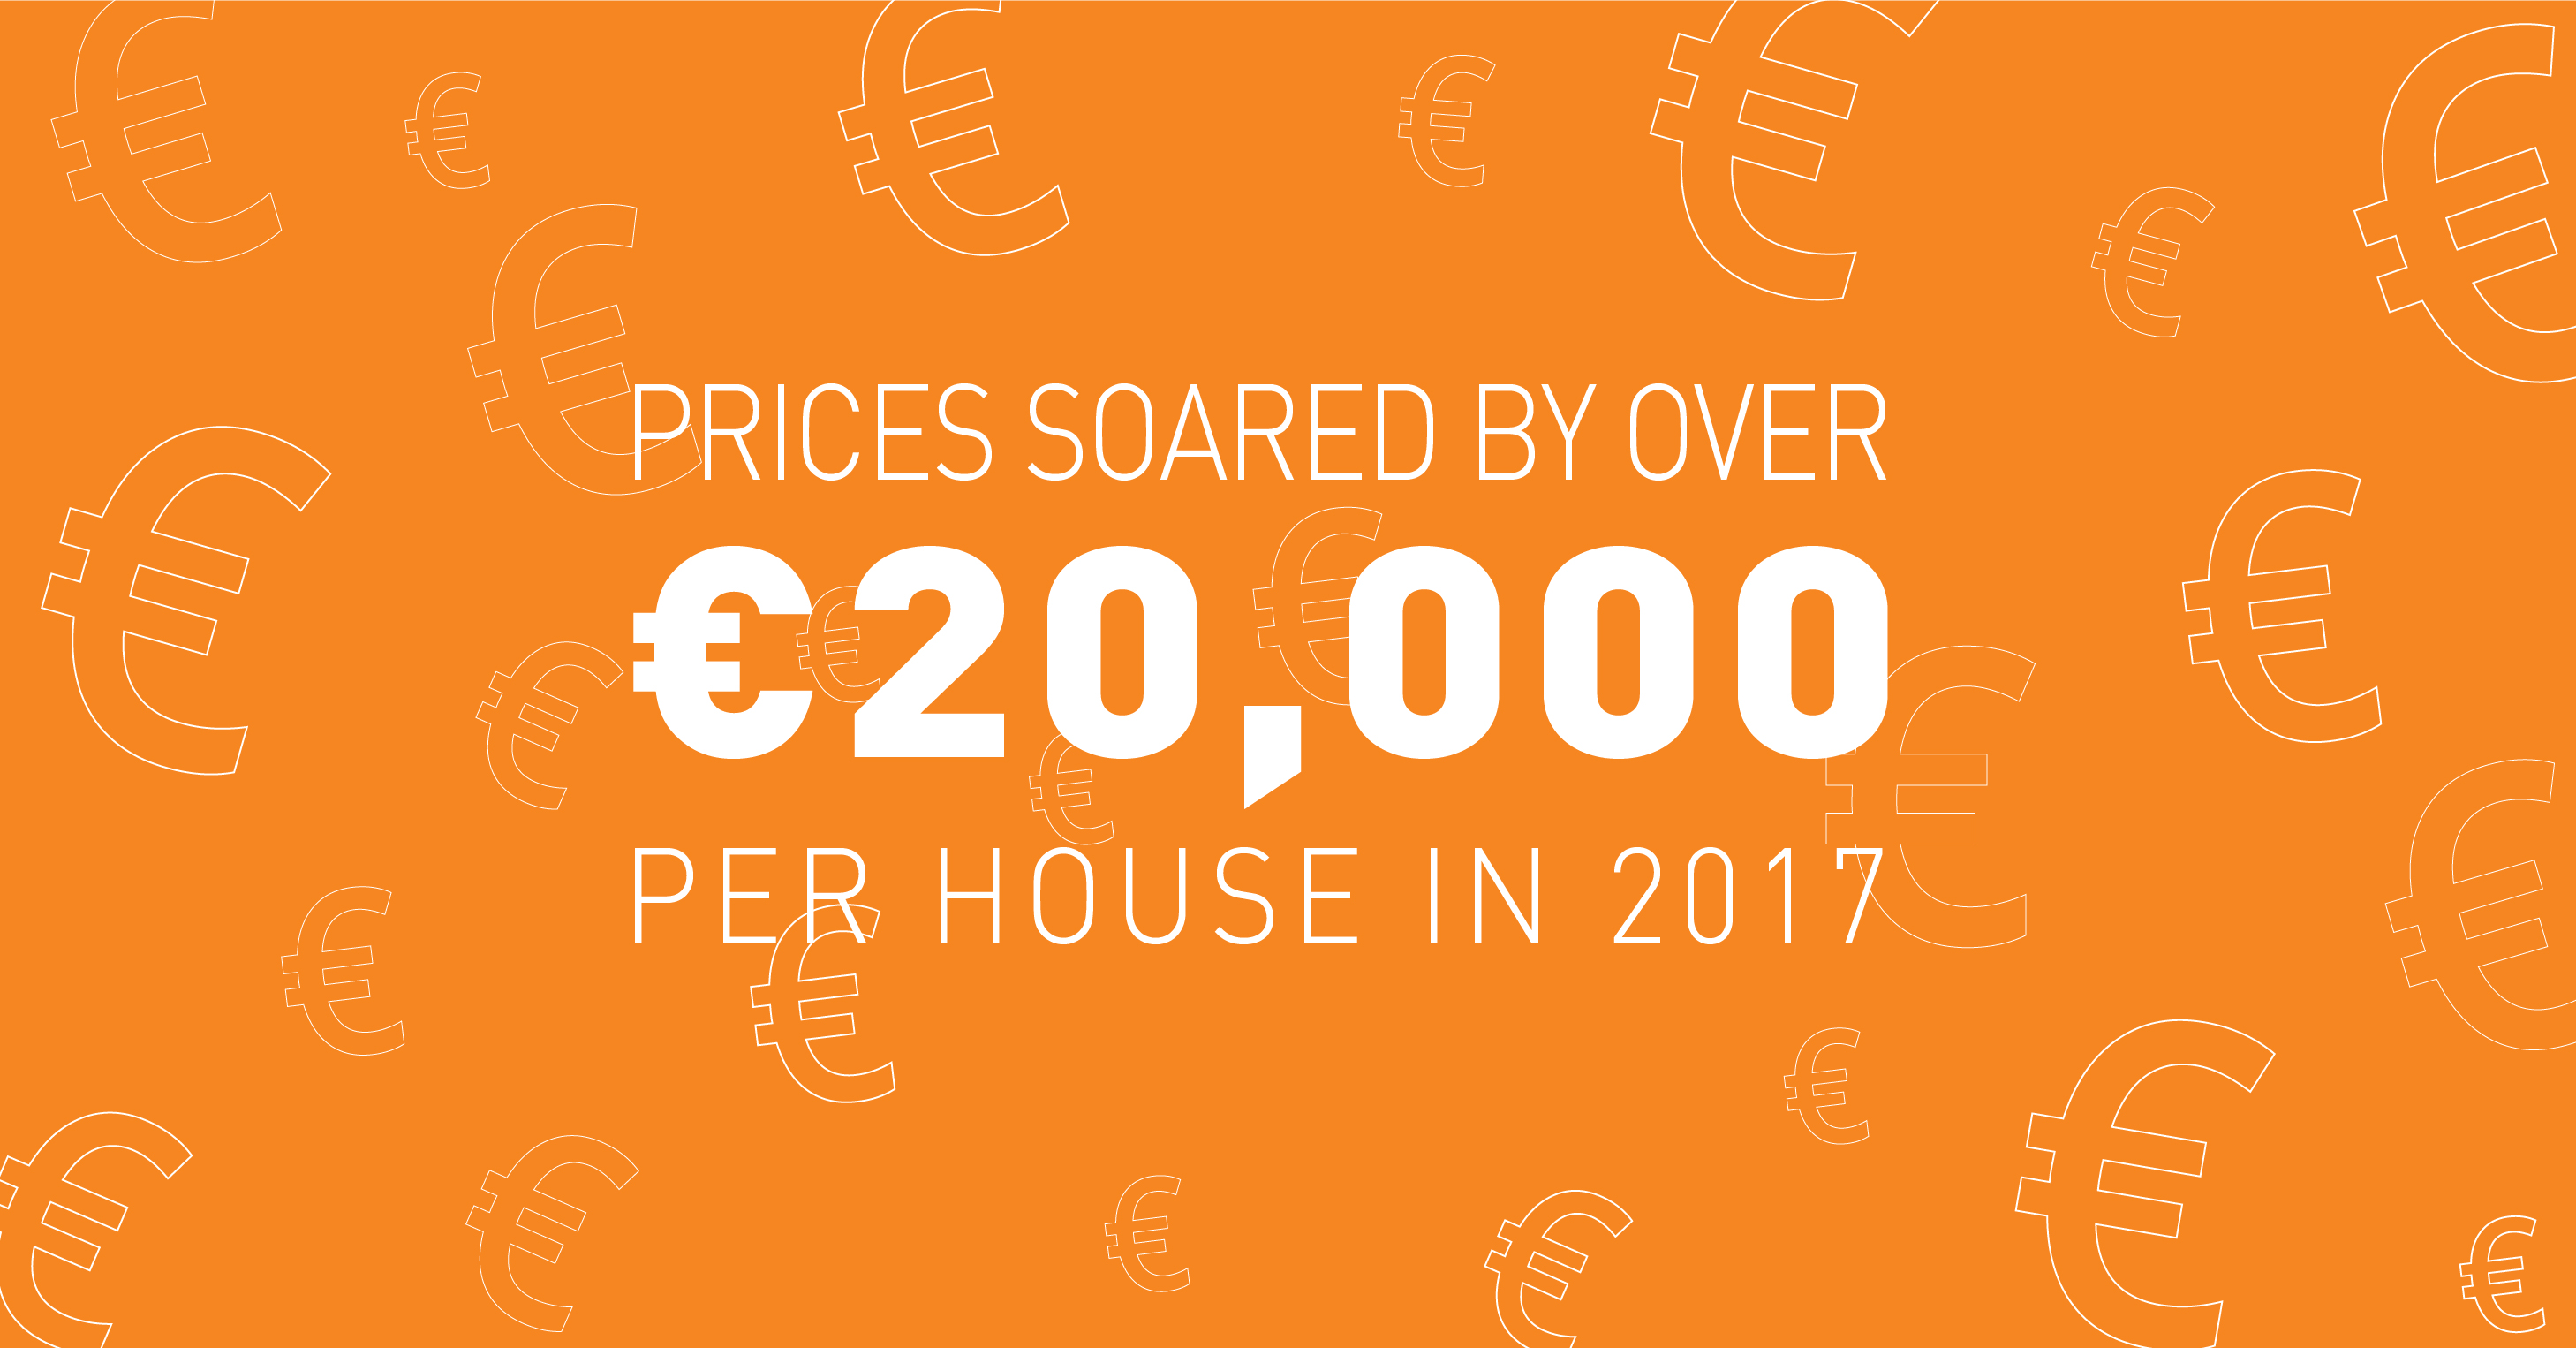 Prices soared by over €20,000 per house in 2017